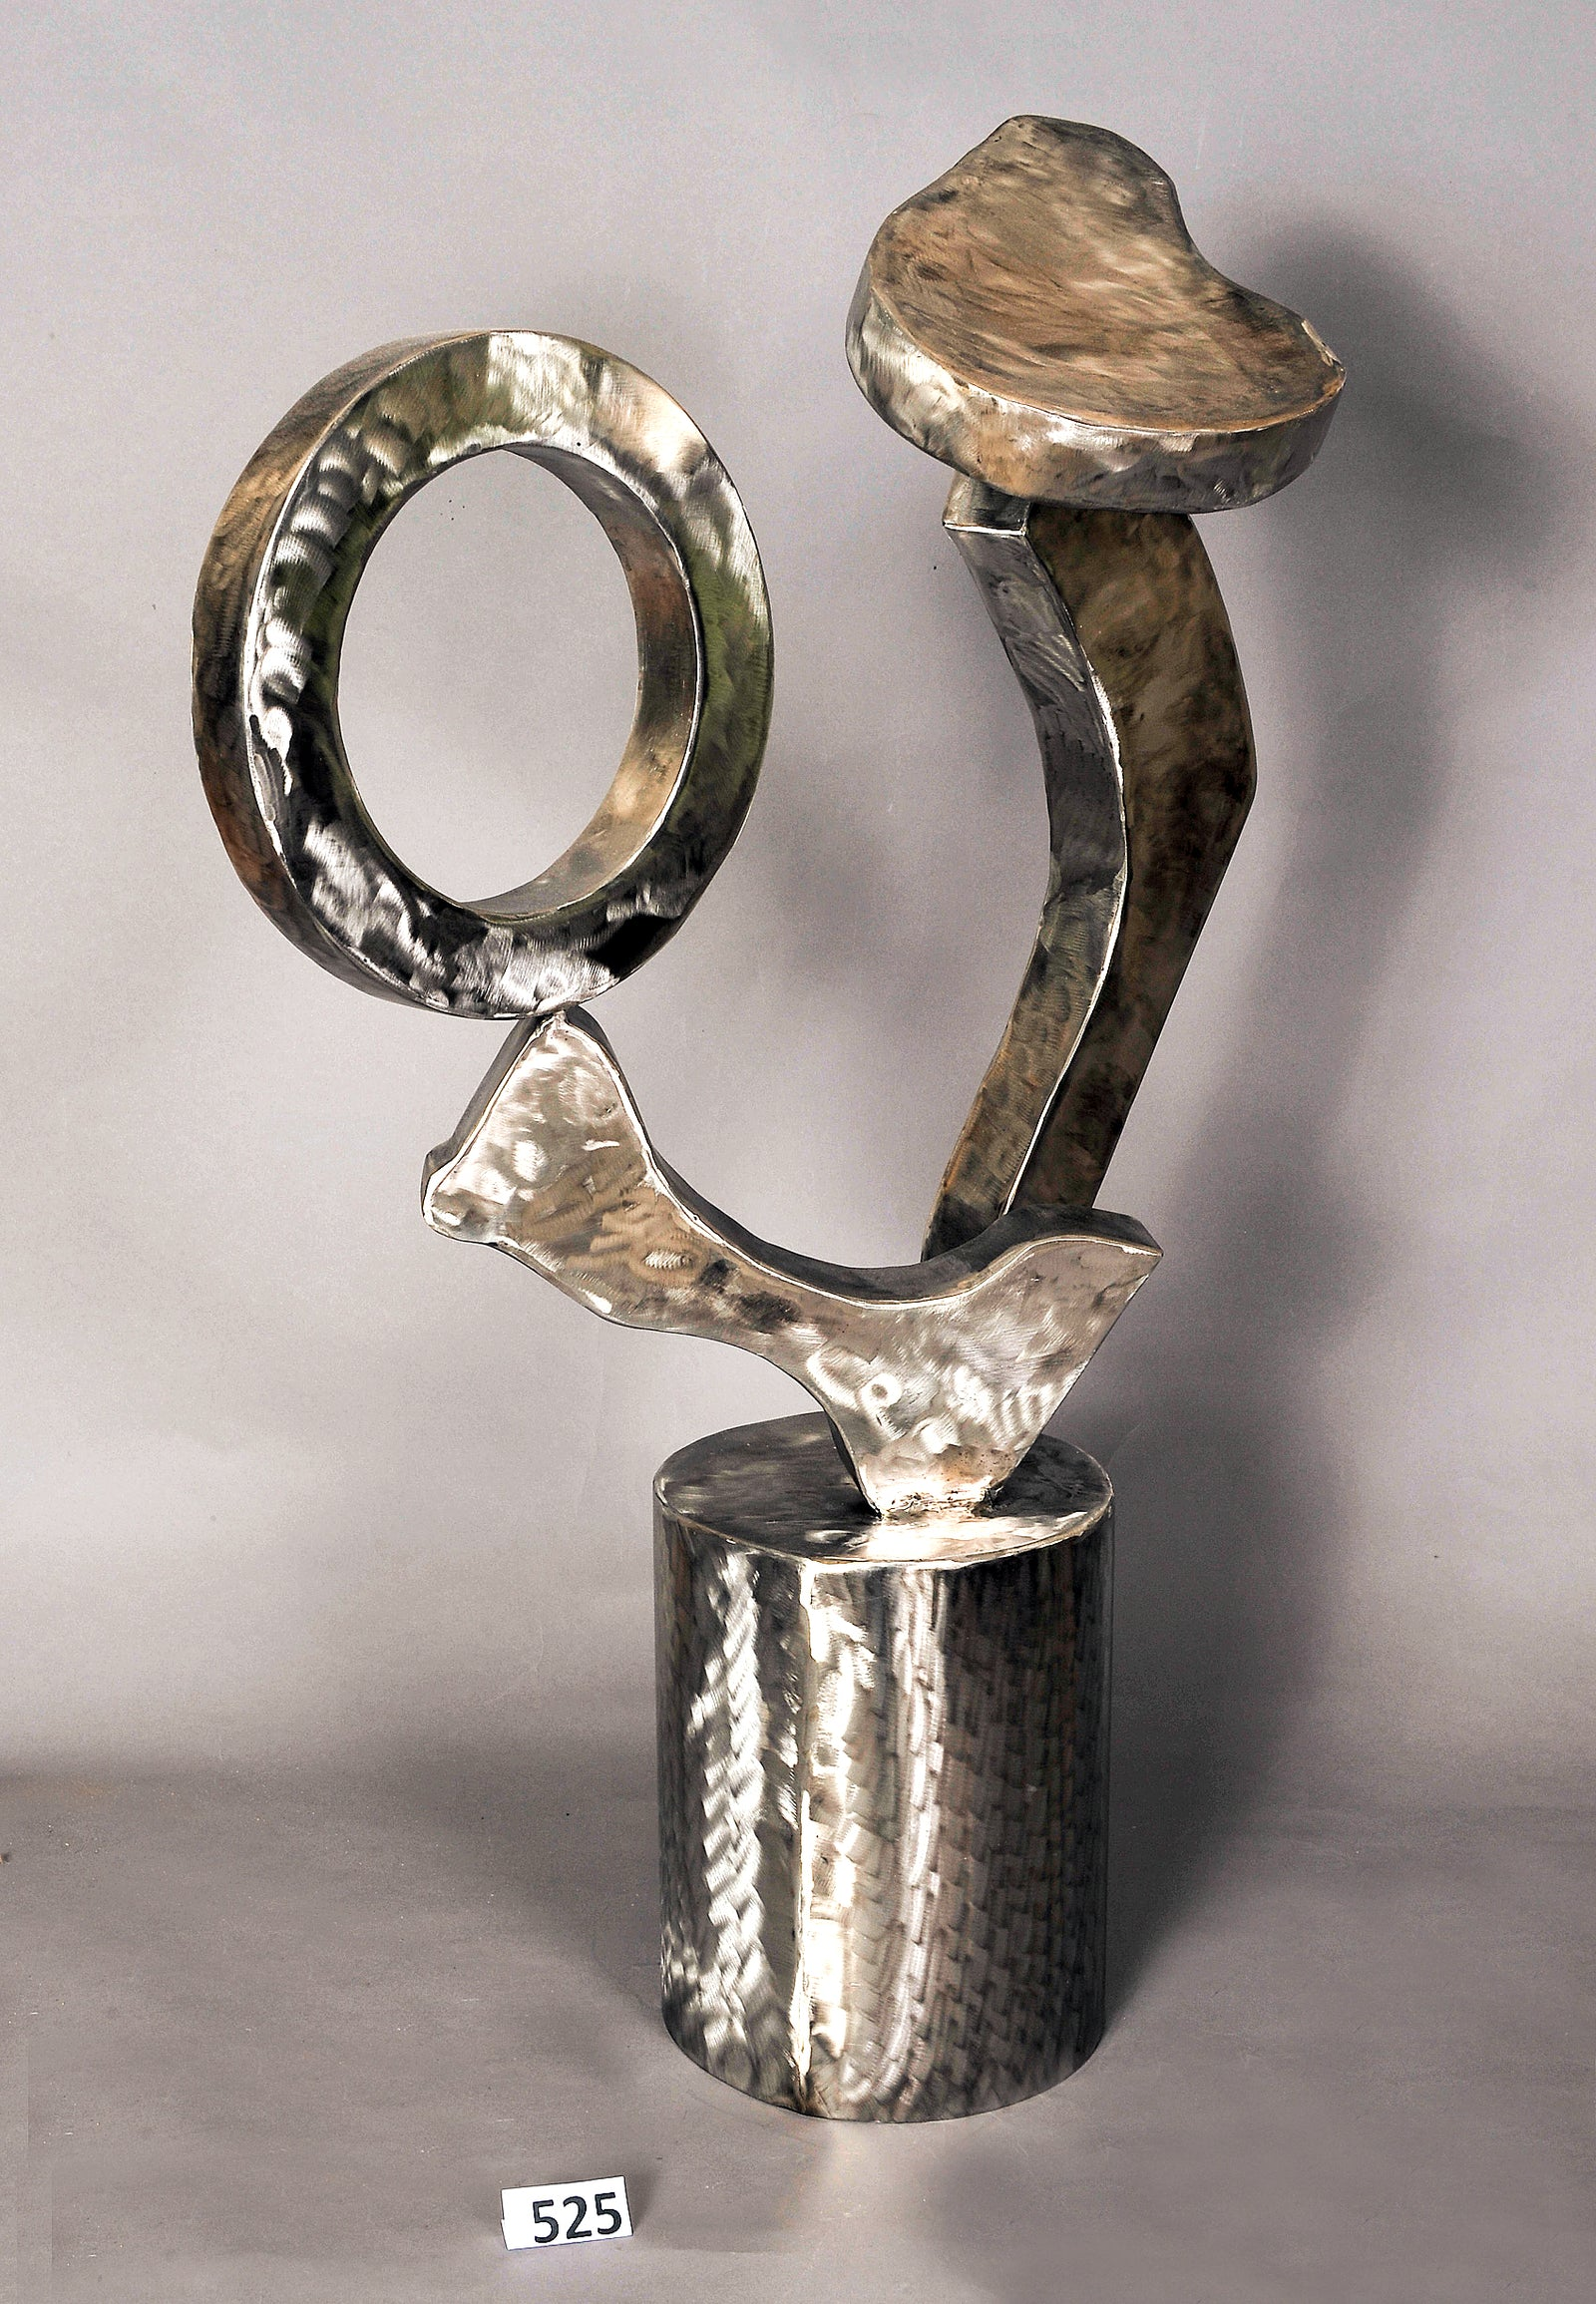 Suspension. Stainless Seel Sculpture.